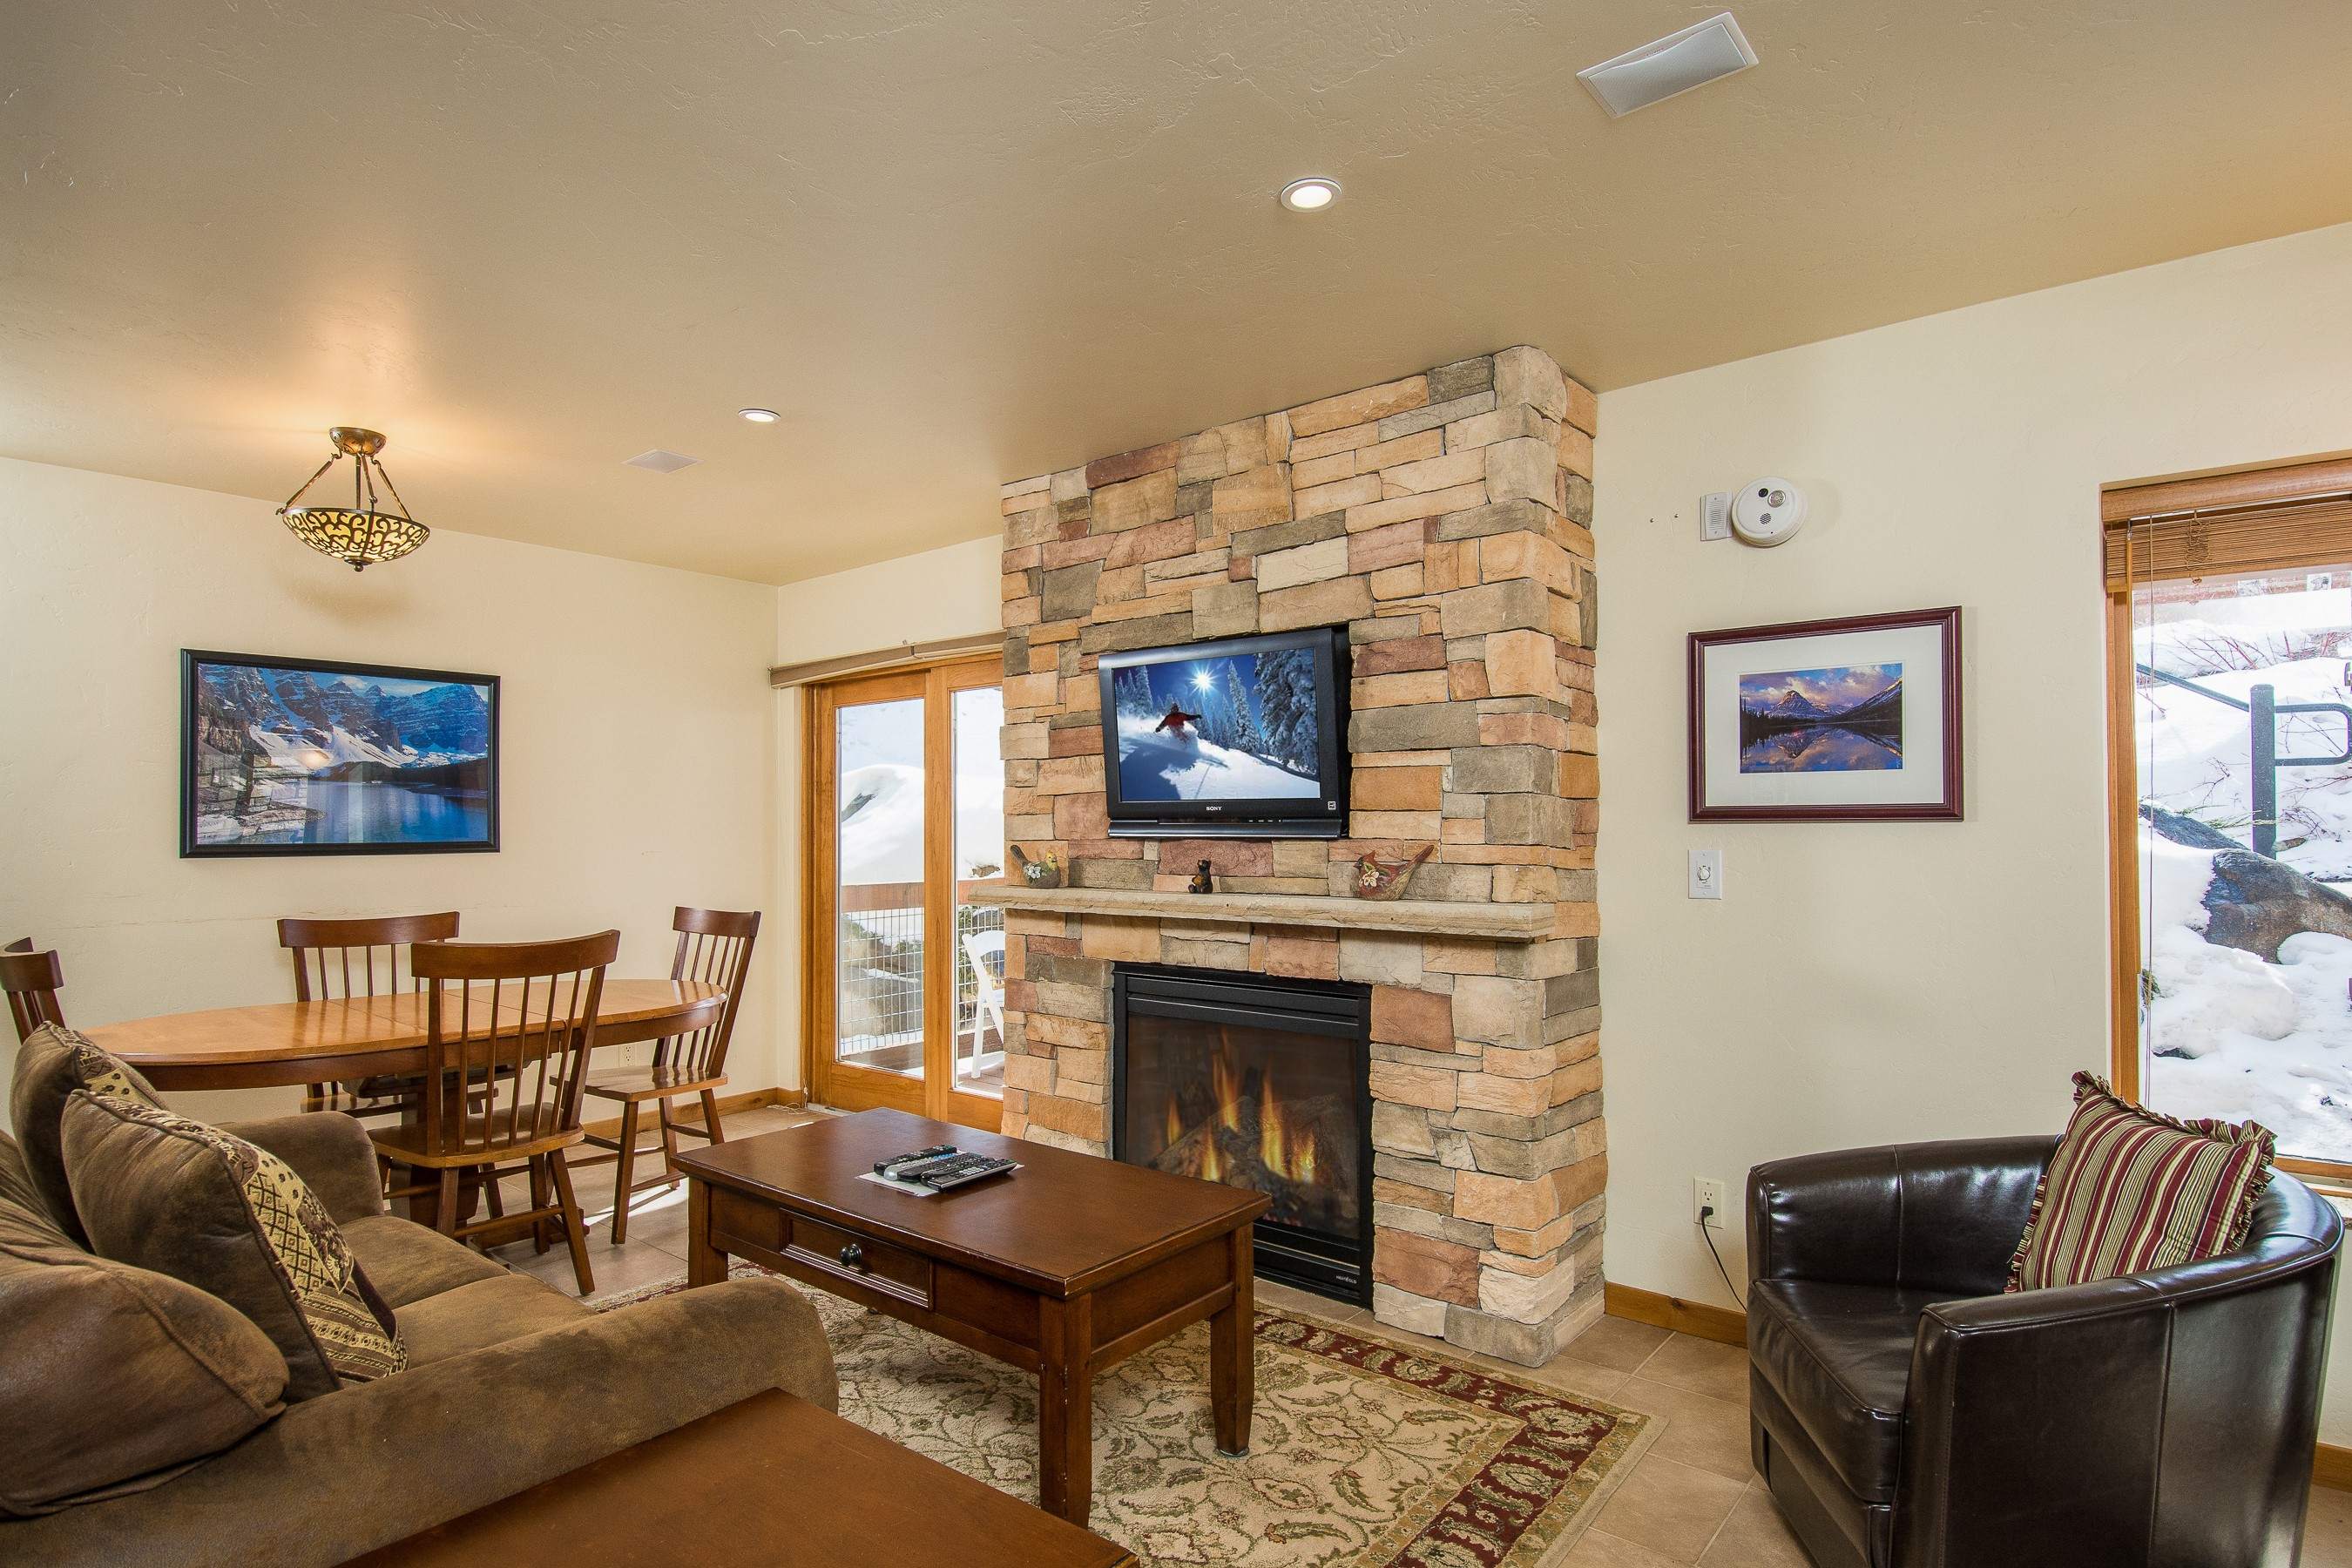 Condominium for Sale at Walk to Skiing, Shopping, Dining and More... 35 Campground Lane C1 & C2 Unit C1 & C2 Snowmass Village, Colorado, 81615 United States